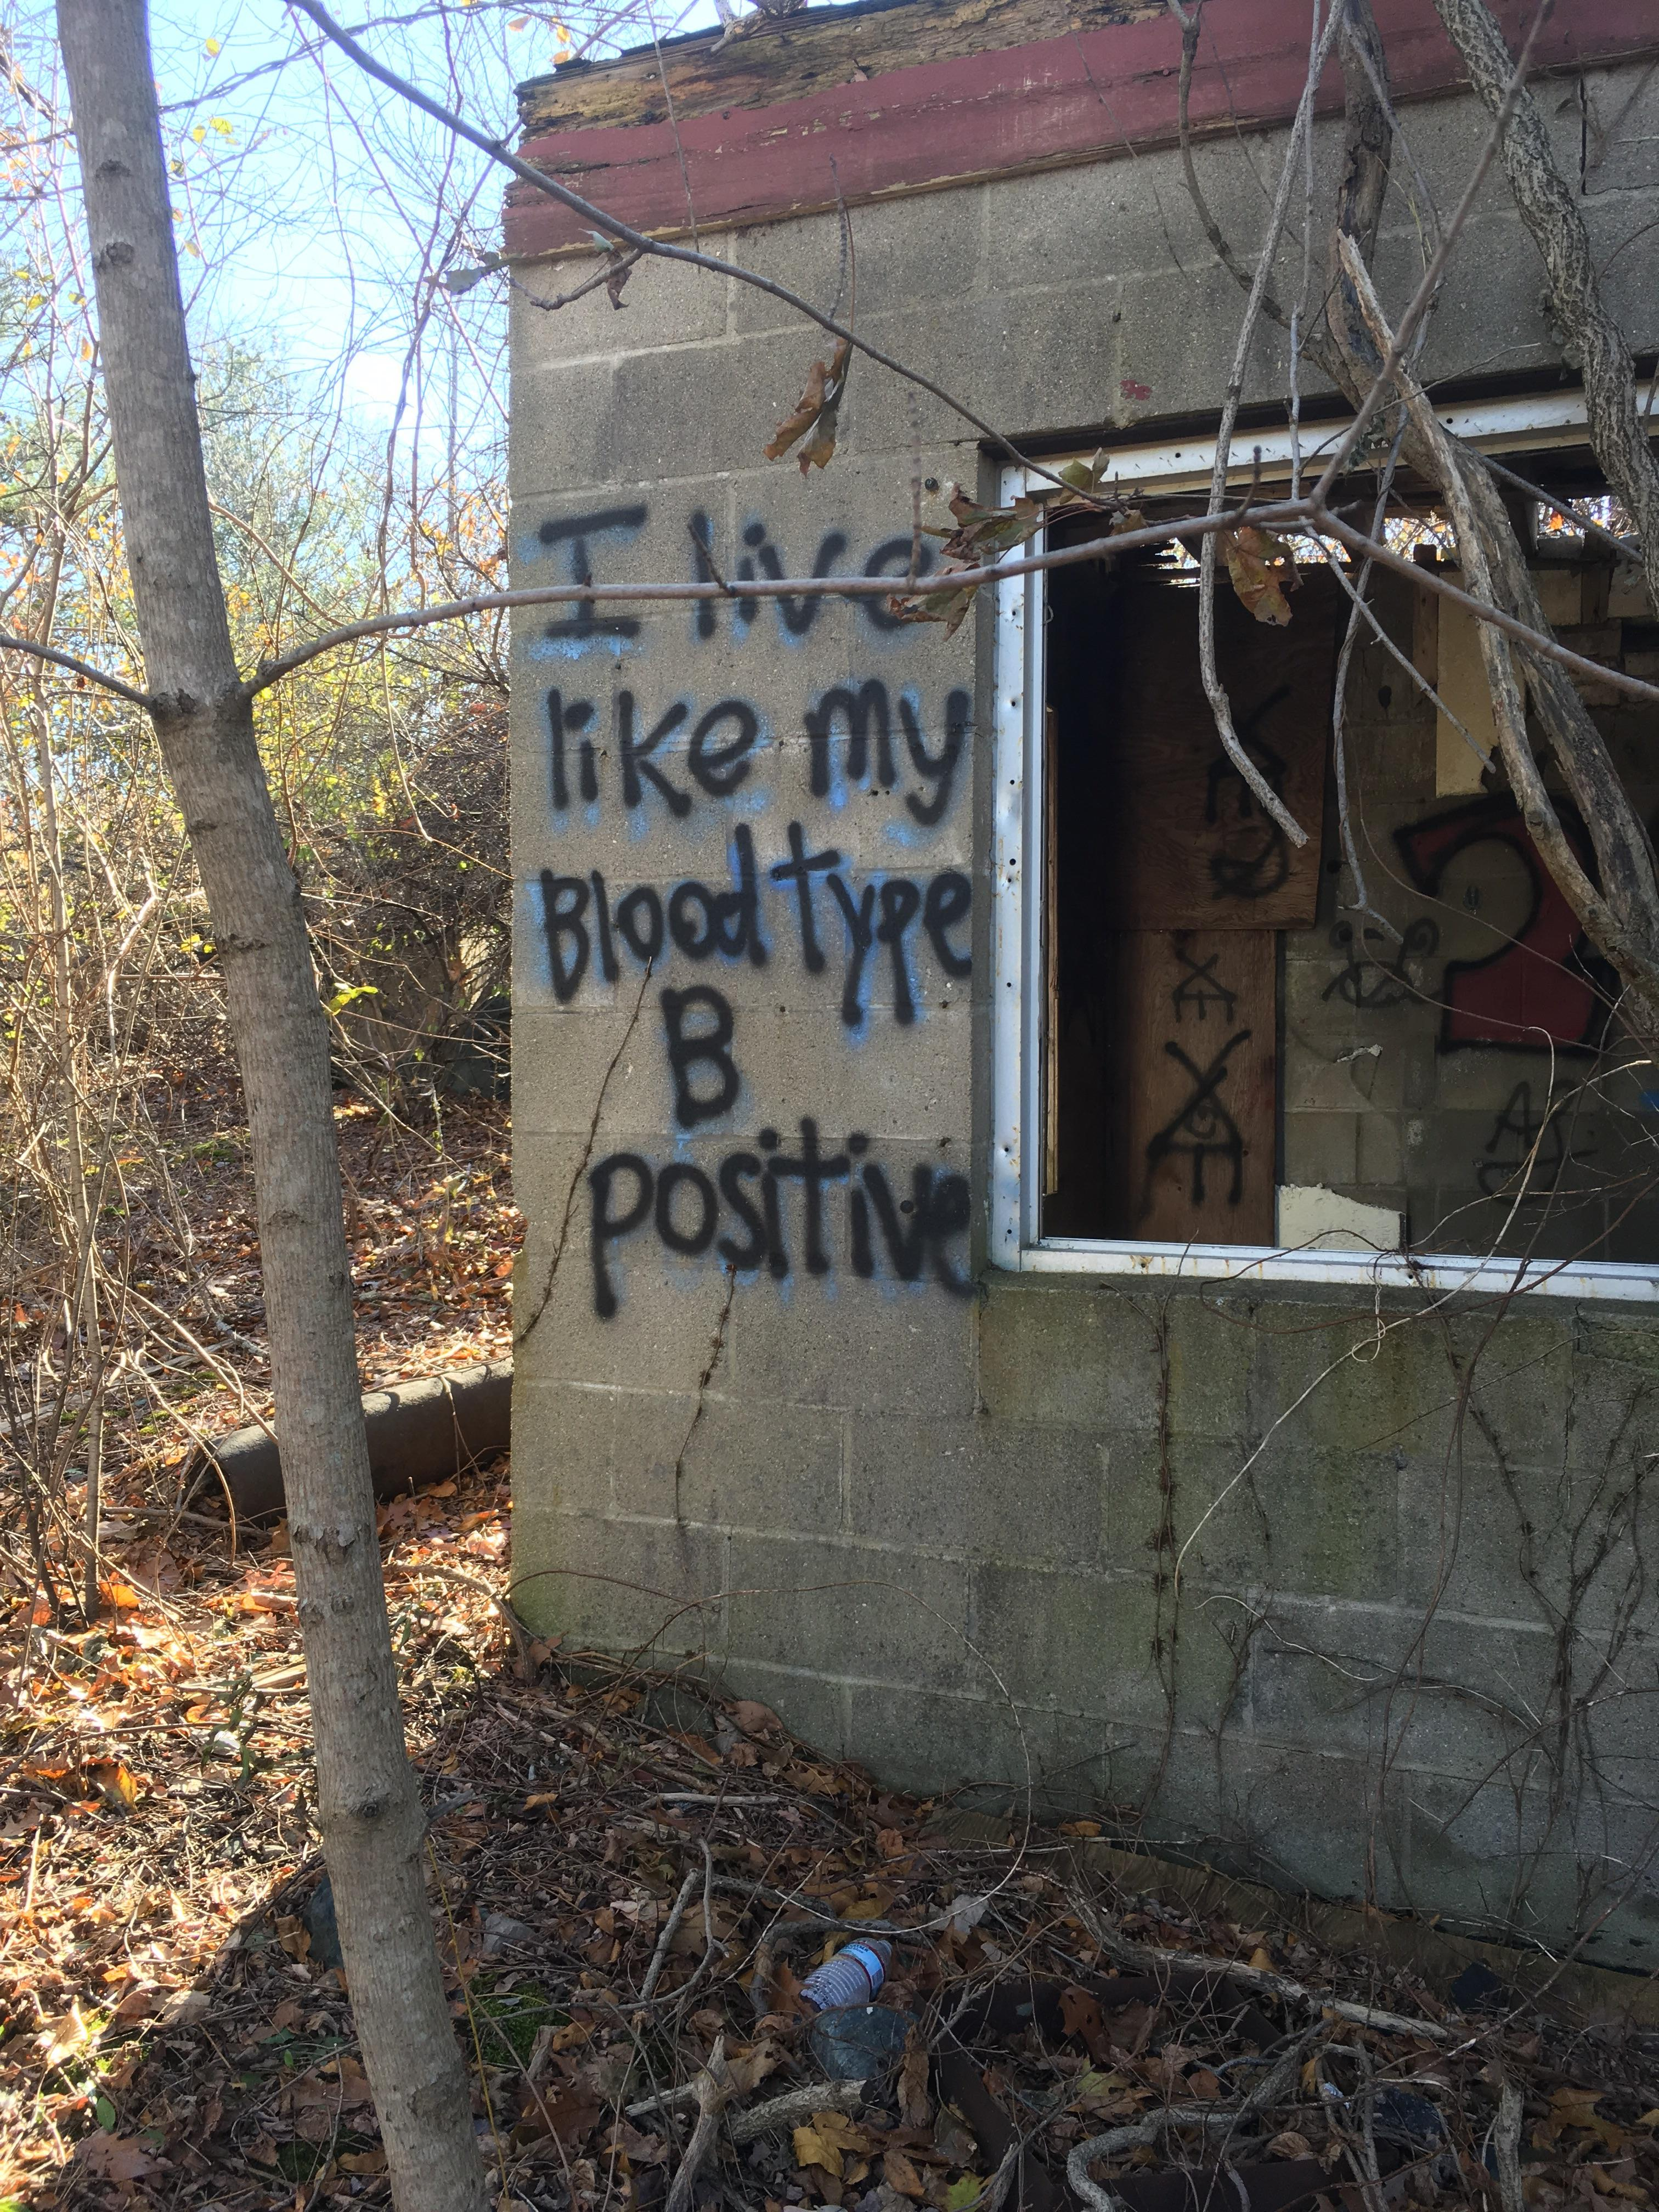 [image] this graffiti in the woods